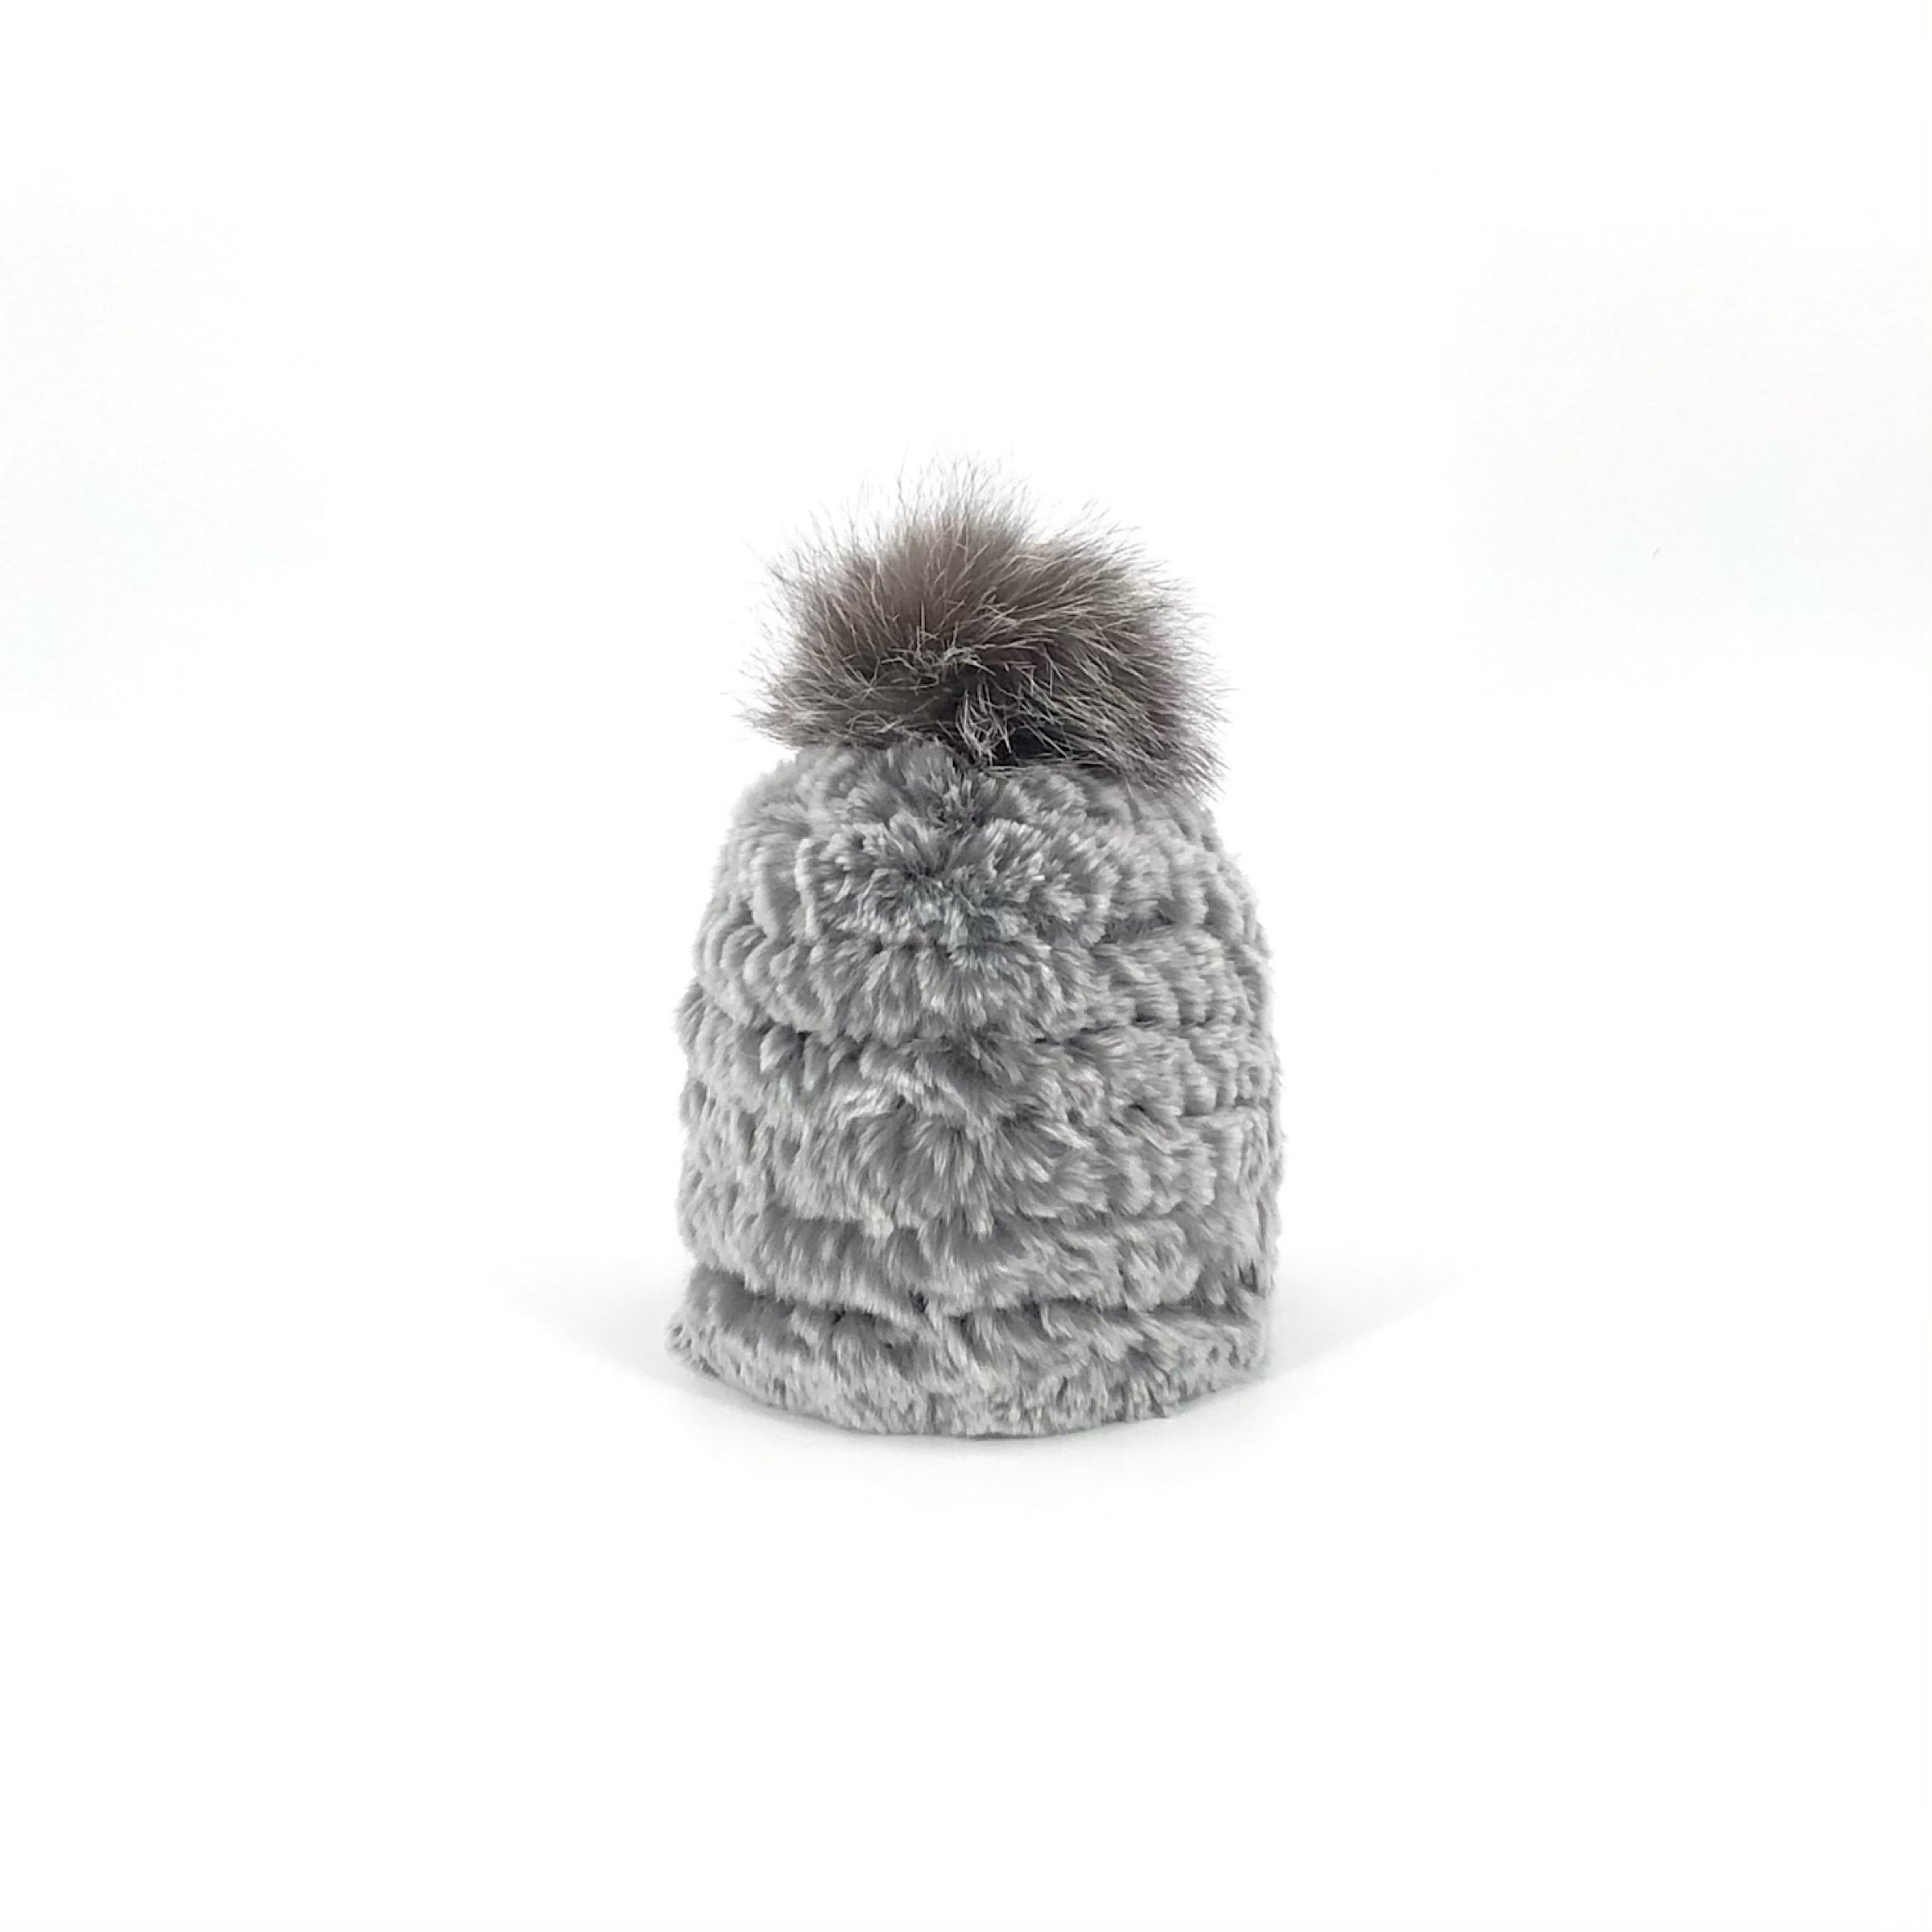 The Snowtop Knitted Rabbit Beanie in Grey with Indigo Fox Pom